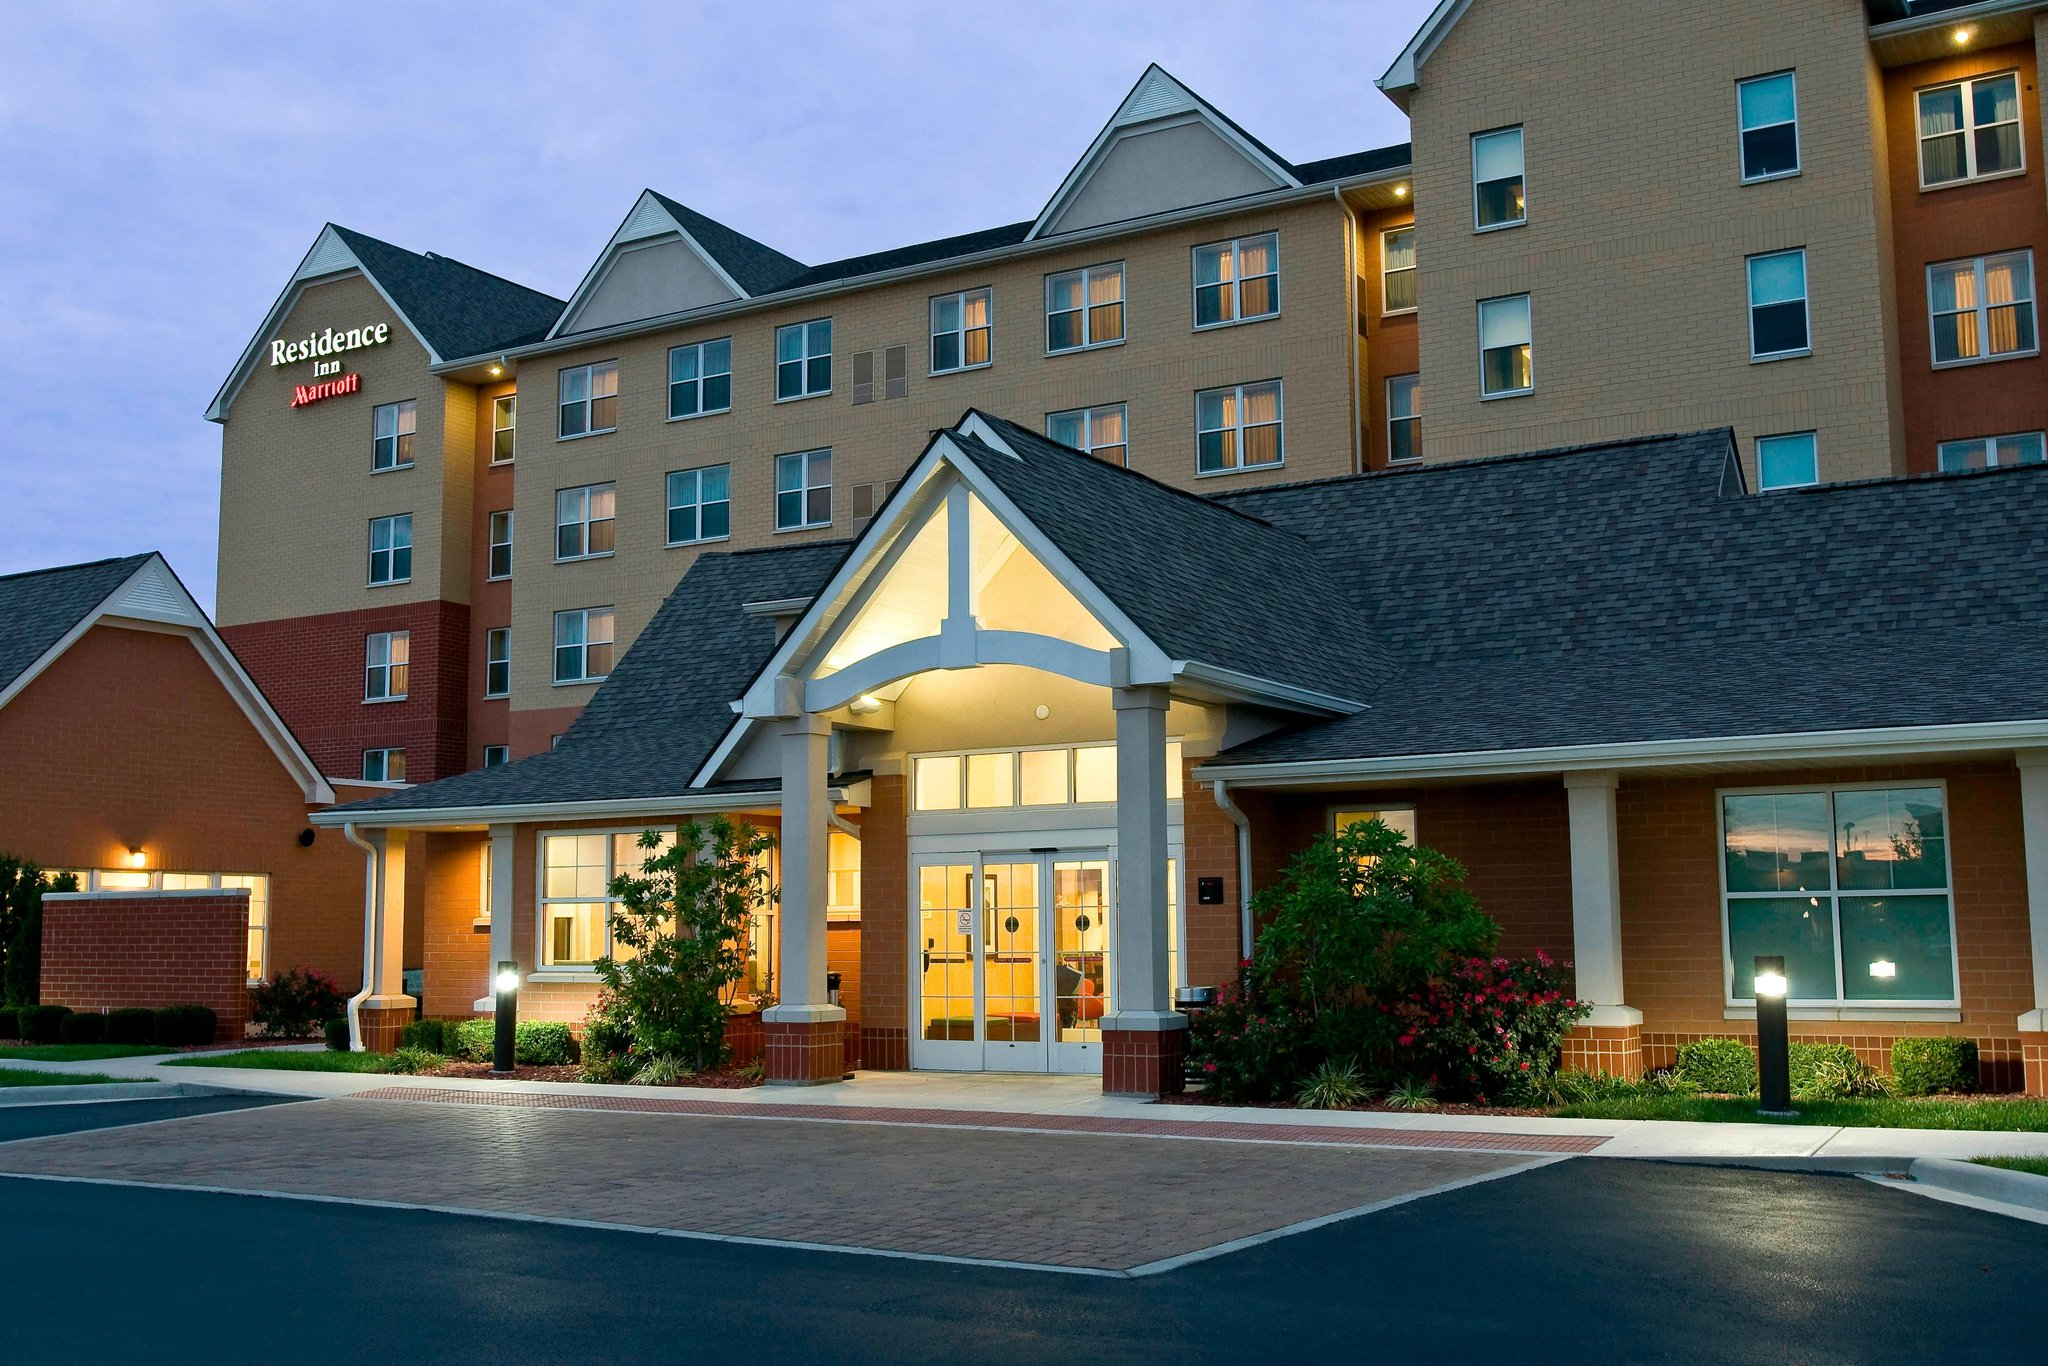 Residence Inn Cincinnati North/W Chester